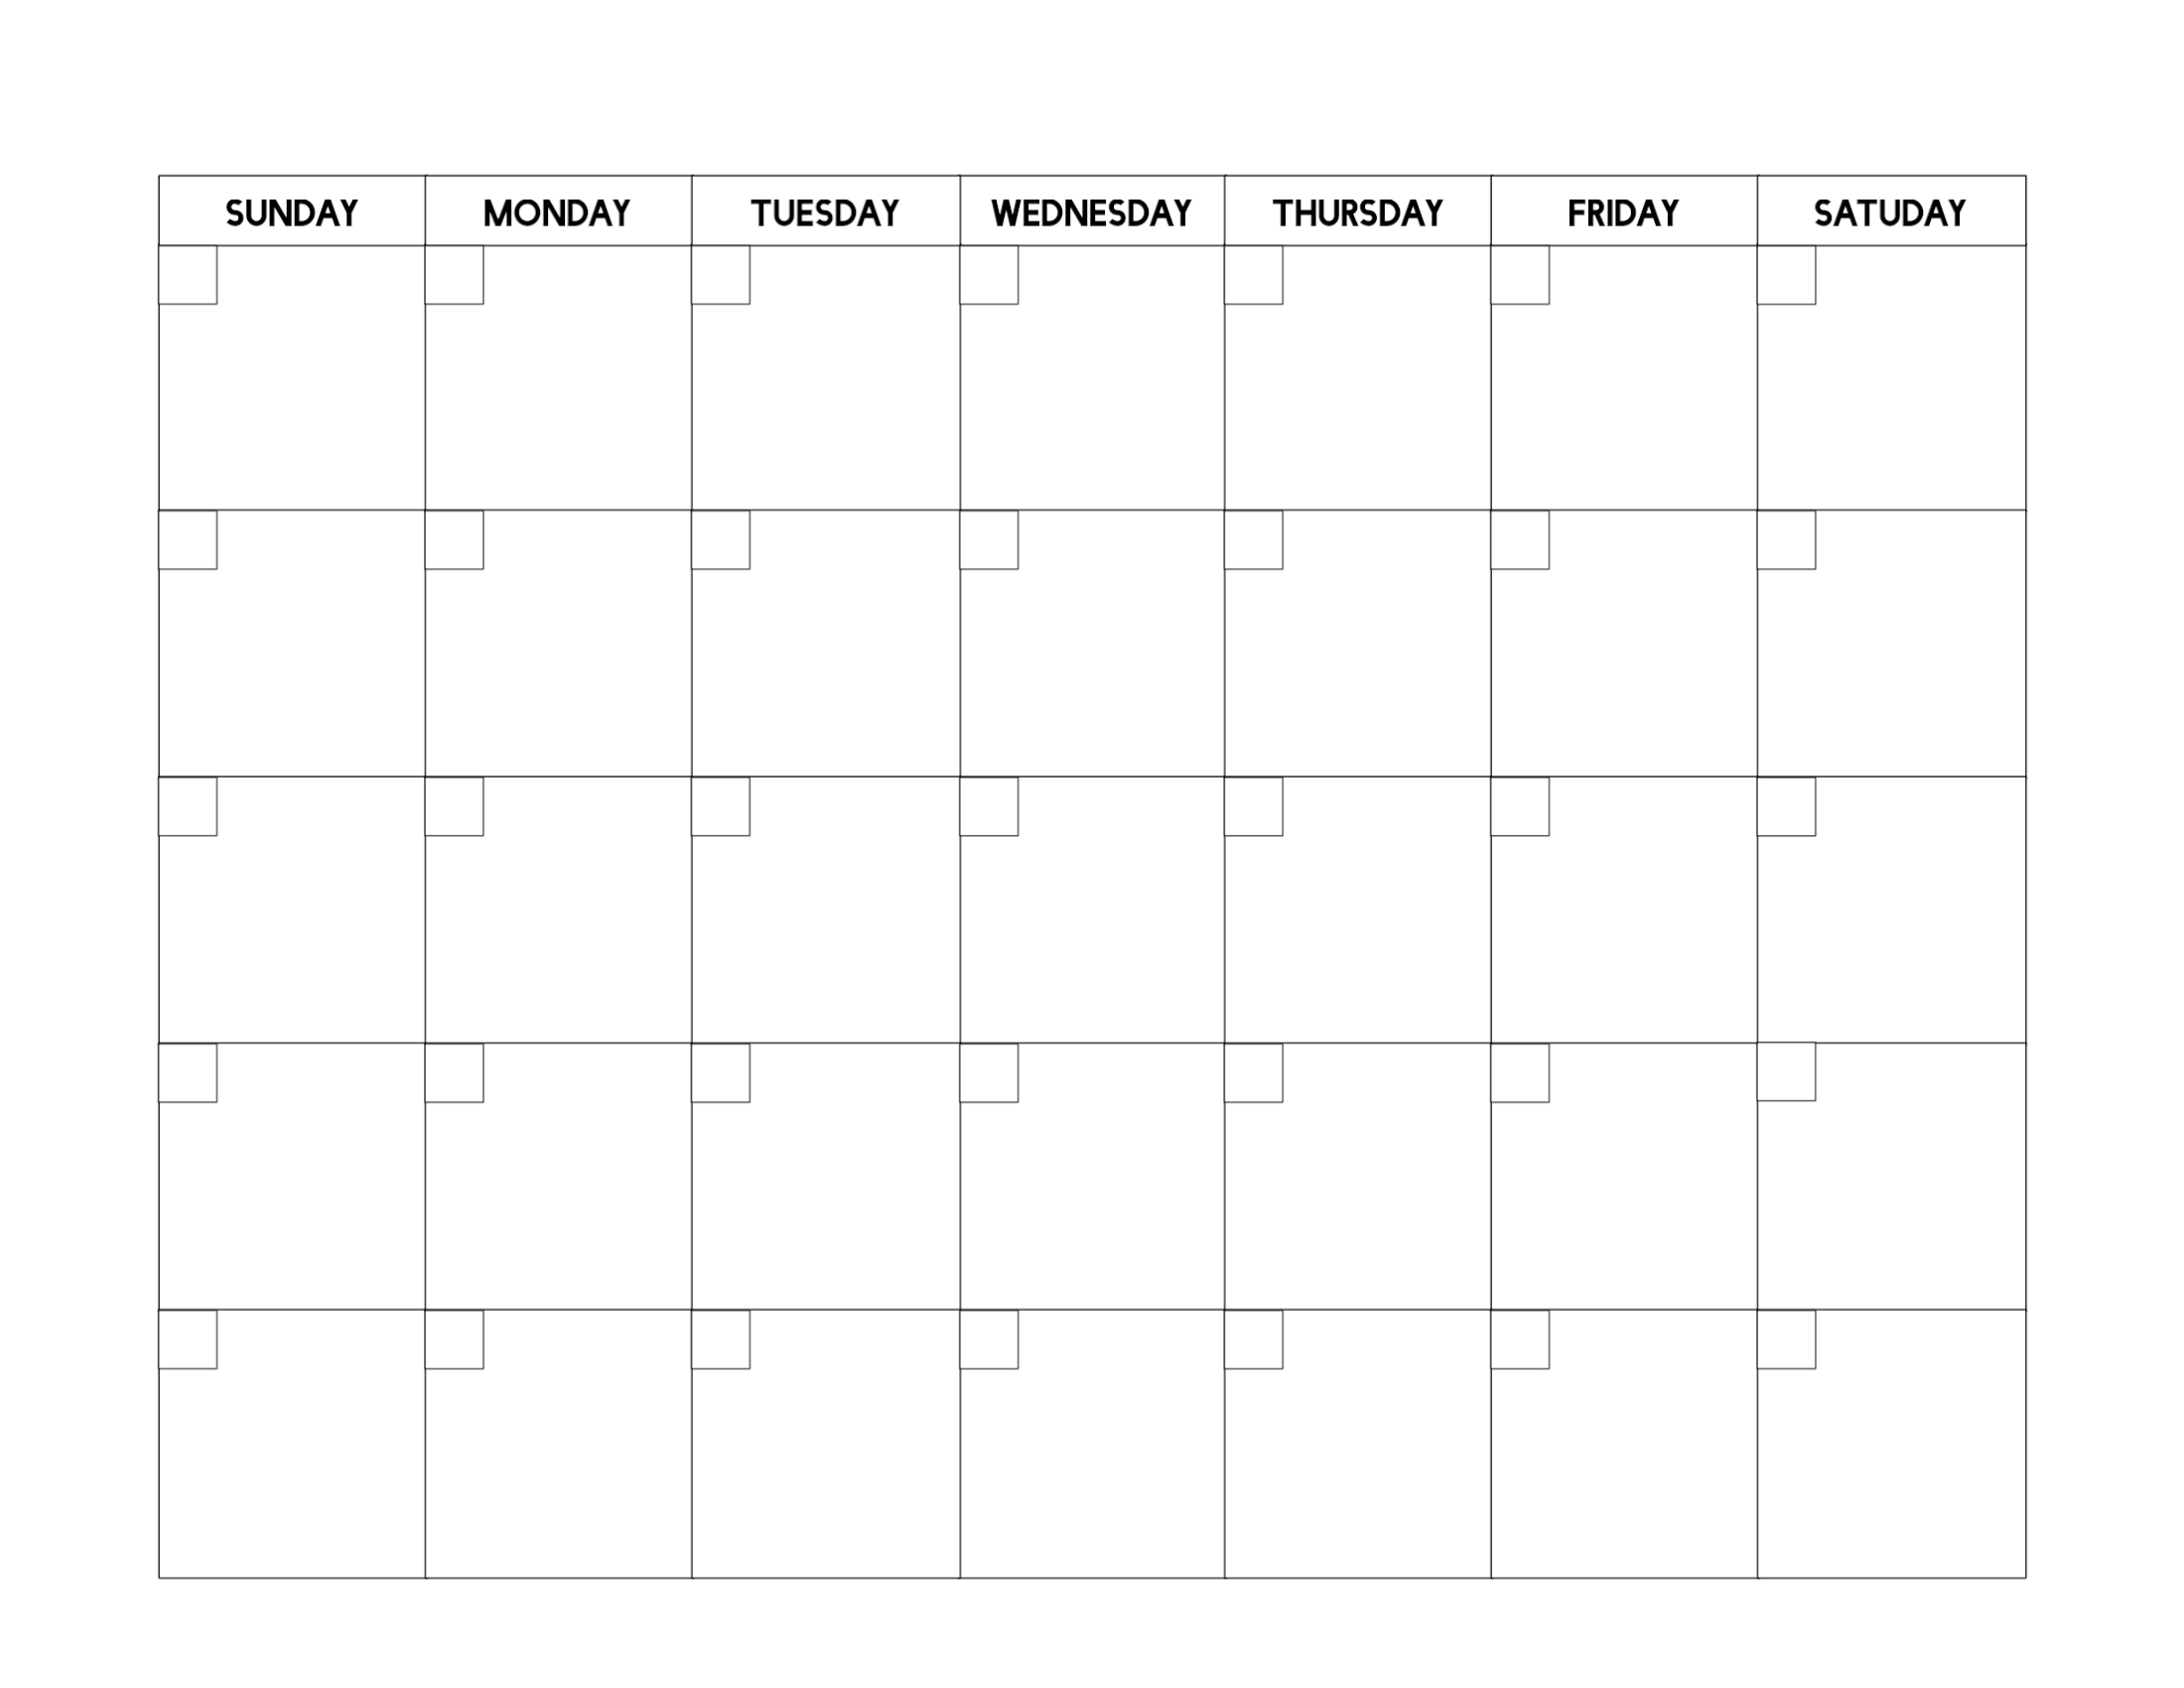 Free Printable Blank Calendar Template   Paper Trail Design Calendar Template Without Dates